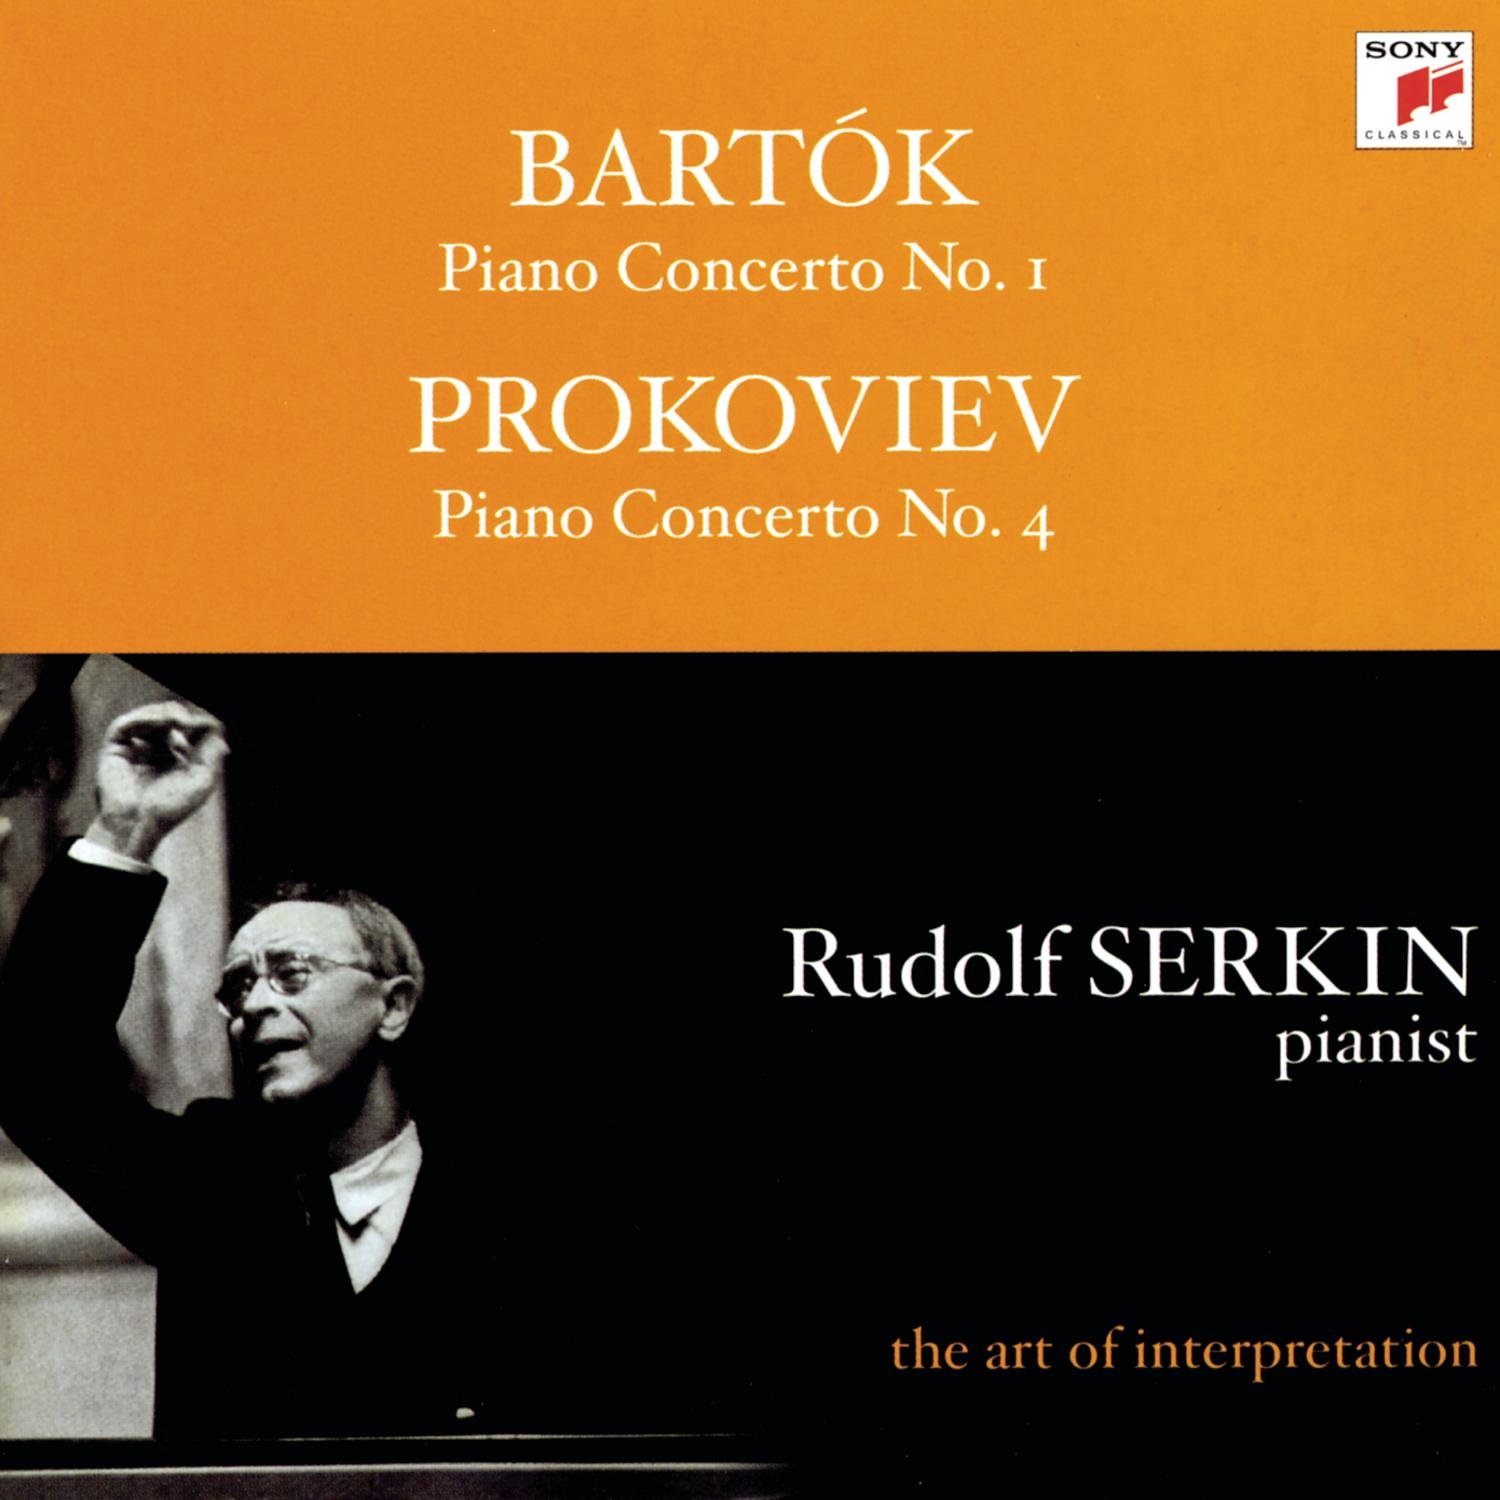 Bartók: Piano Concerto No. 1 (1962(; Prokoviev: Piano Concerto No. 4 (1958) (The Art of Interpretation) by Sony Classical